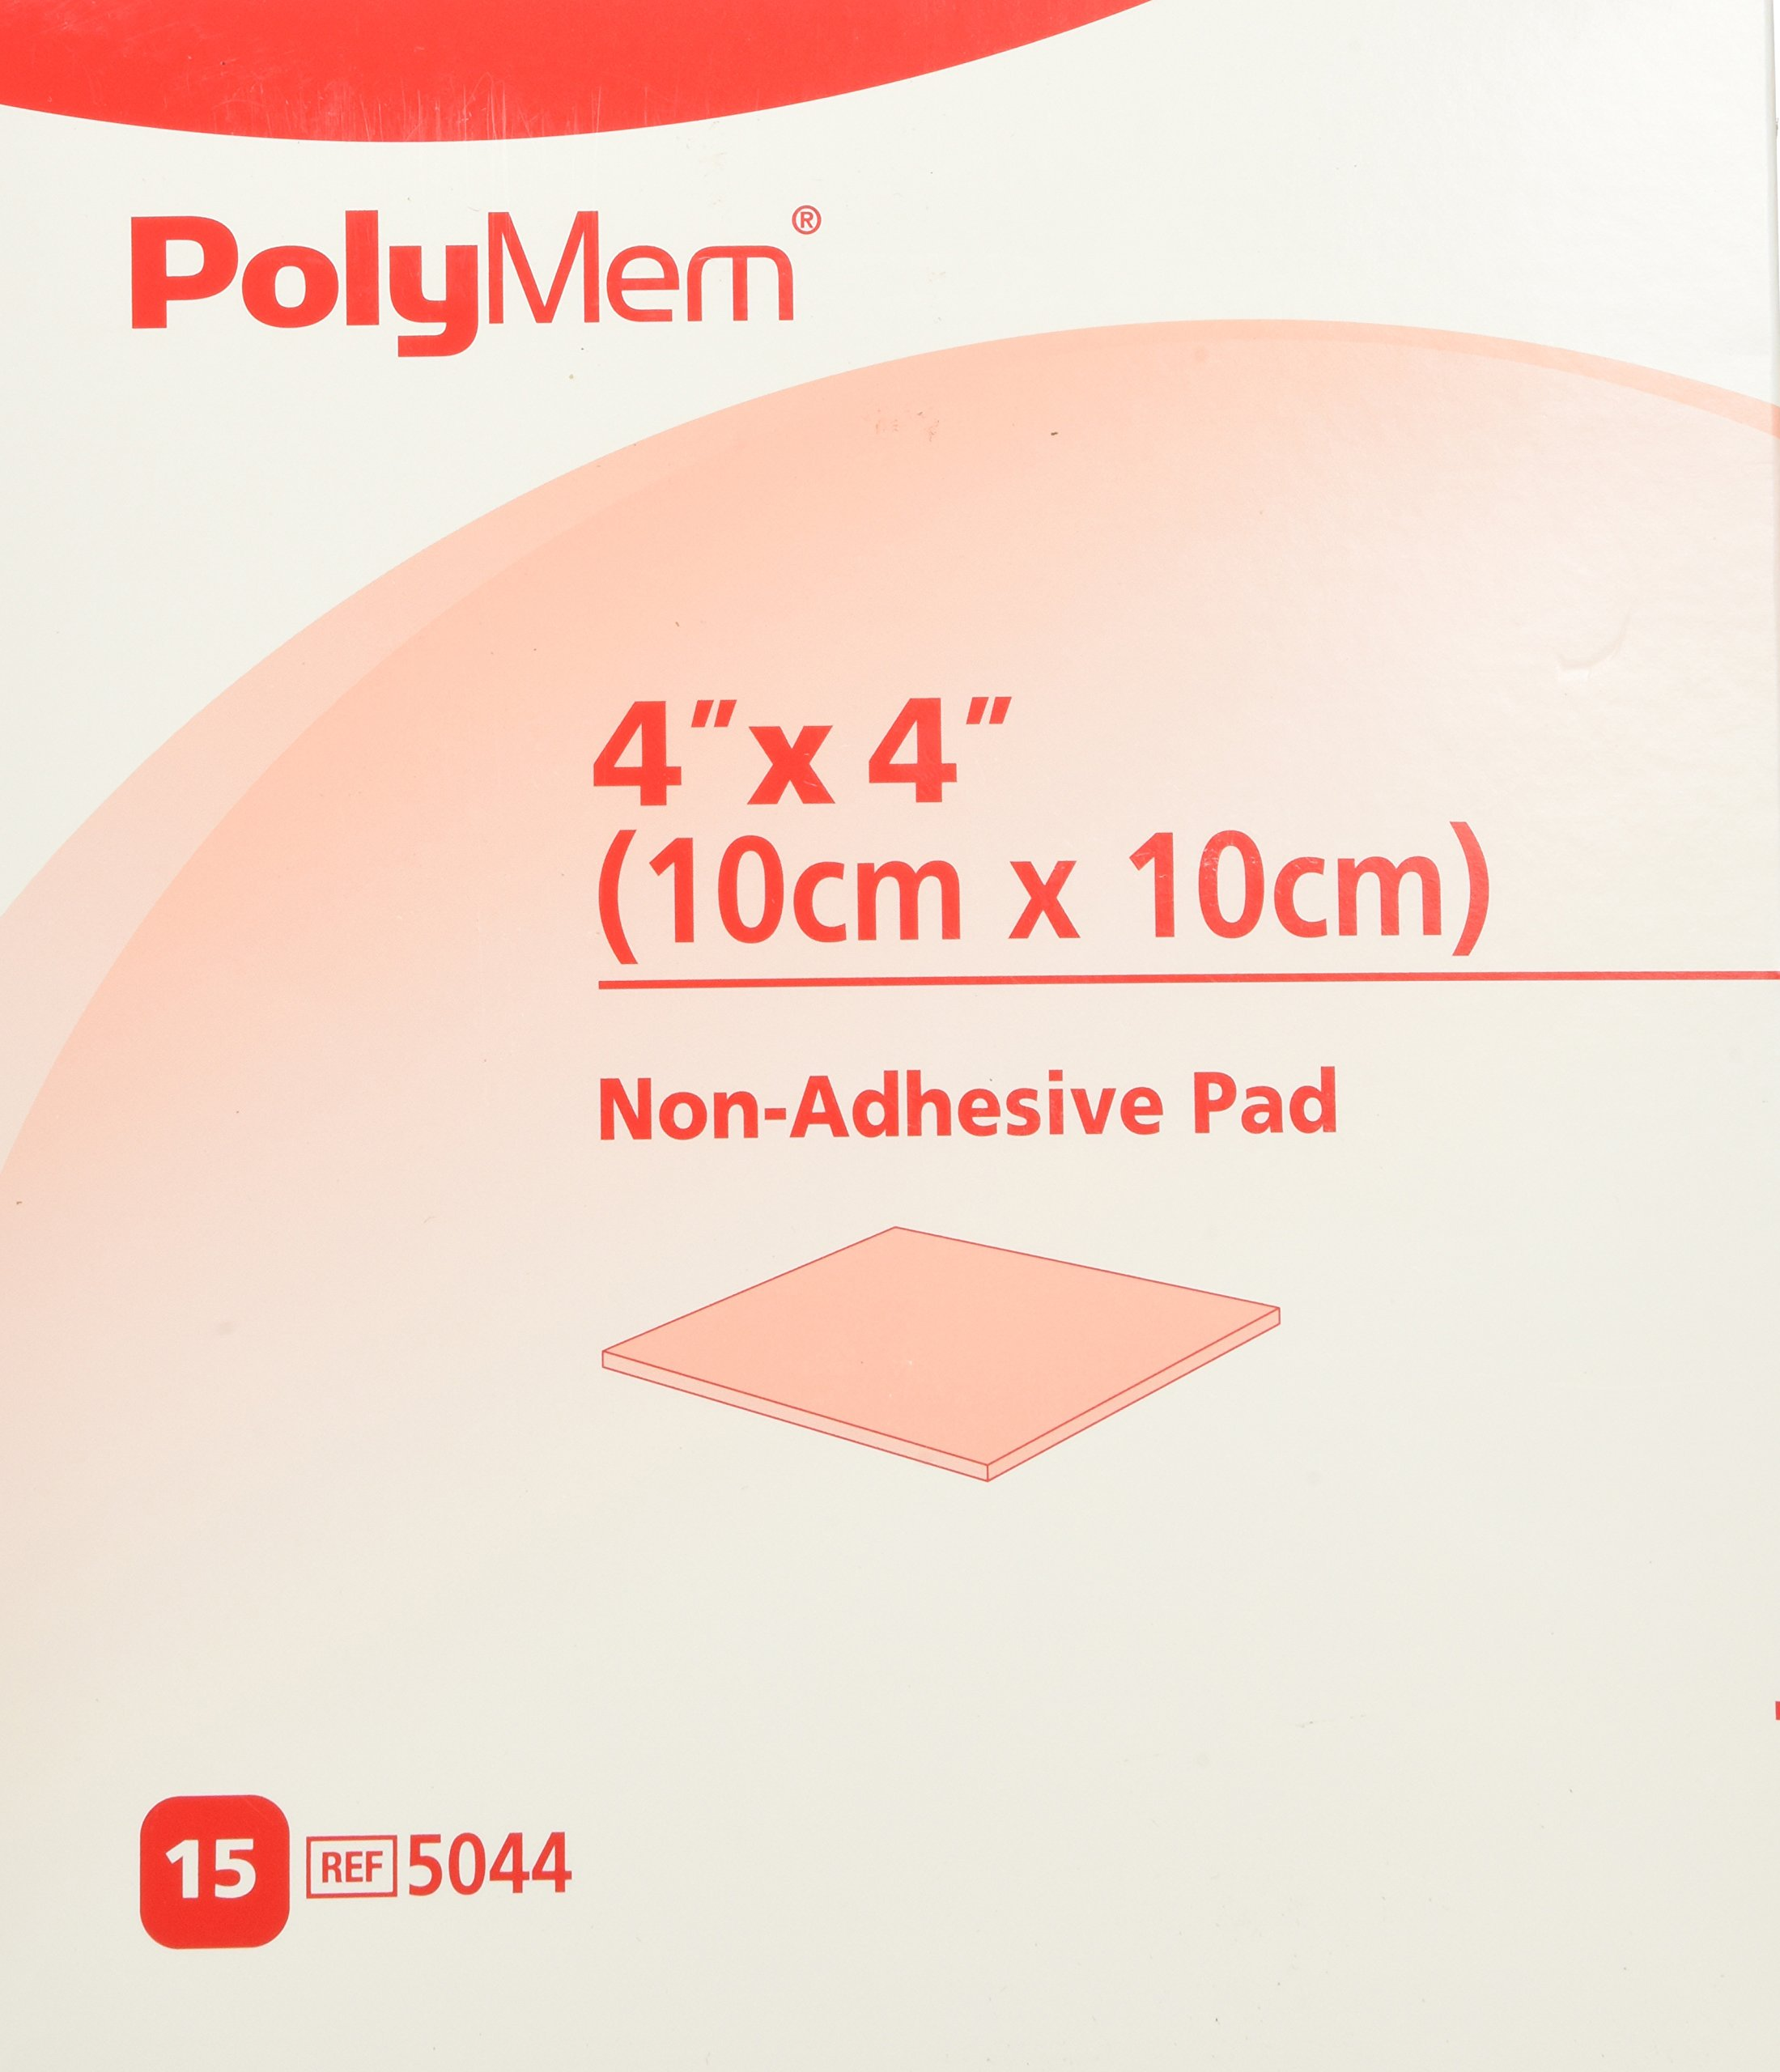 PolyMem Non-Adhesive Wound Dressing, Sterile, Foam, 4' X 4' Pad, 5044 (Box of 15) by Shapes by PolyMem